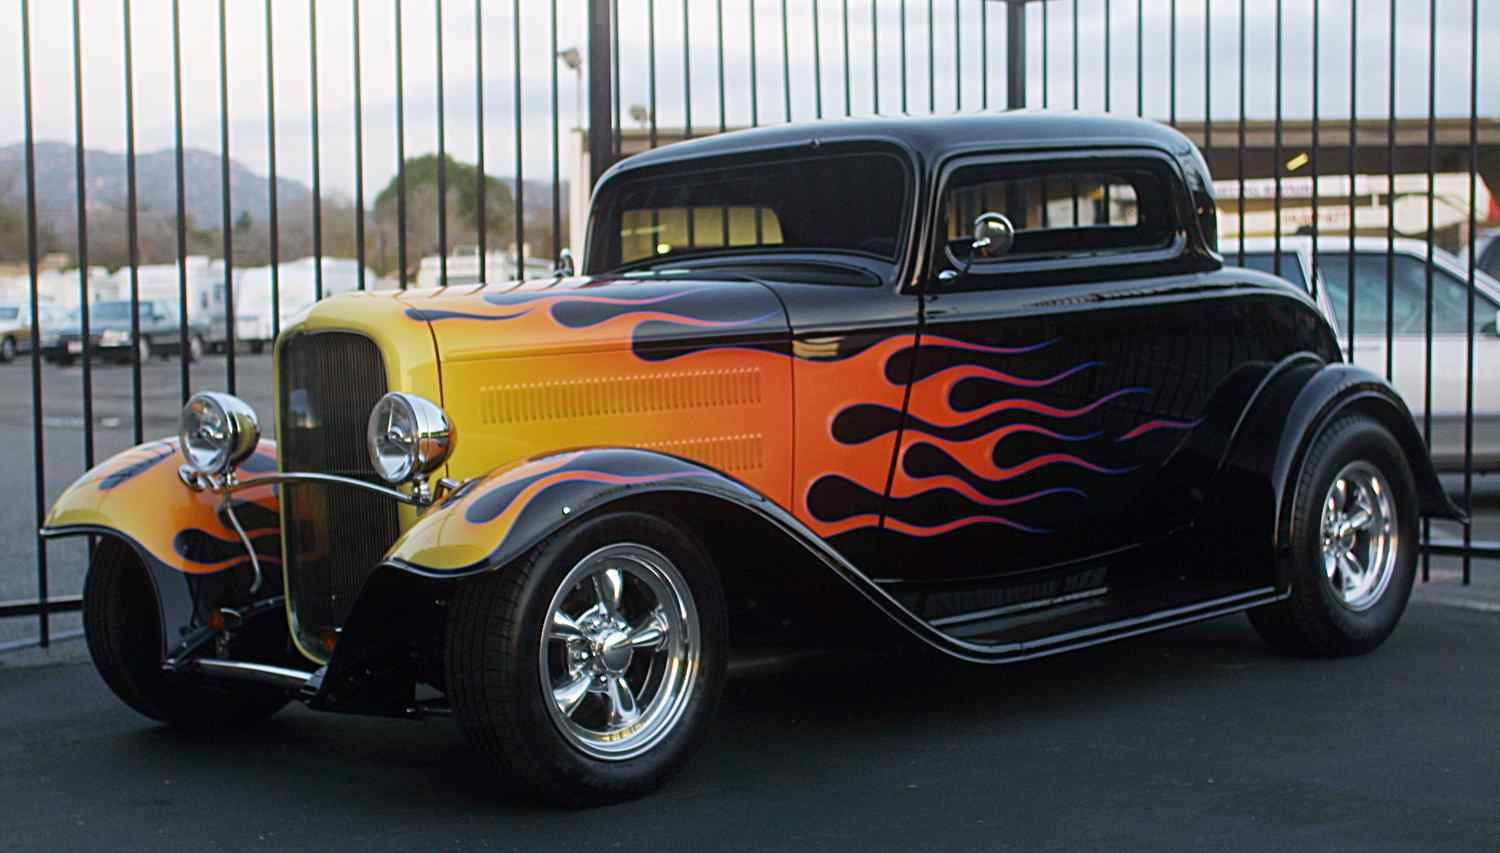 Classic Hot Rod and Street Rod Pictures ----- Hot rods are ...